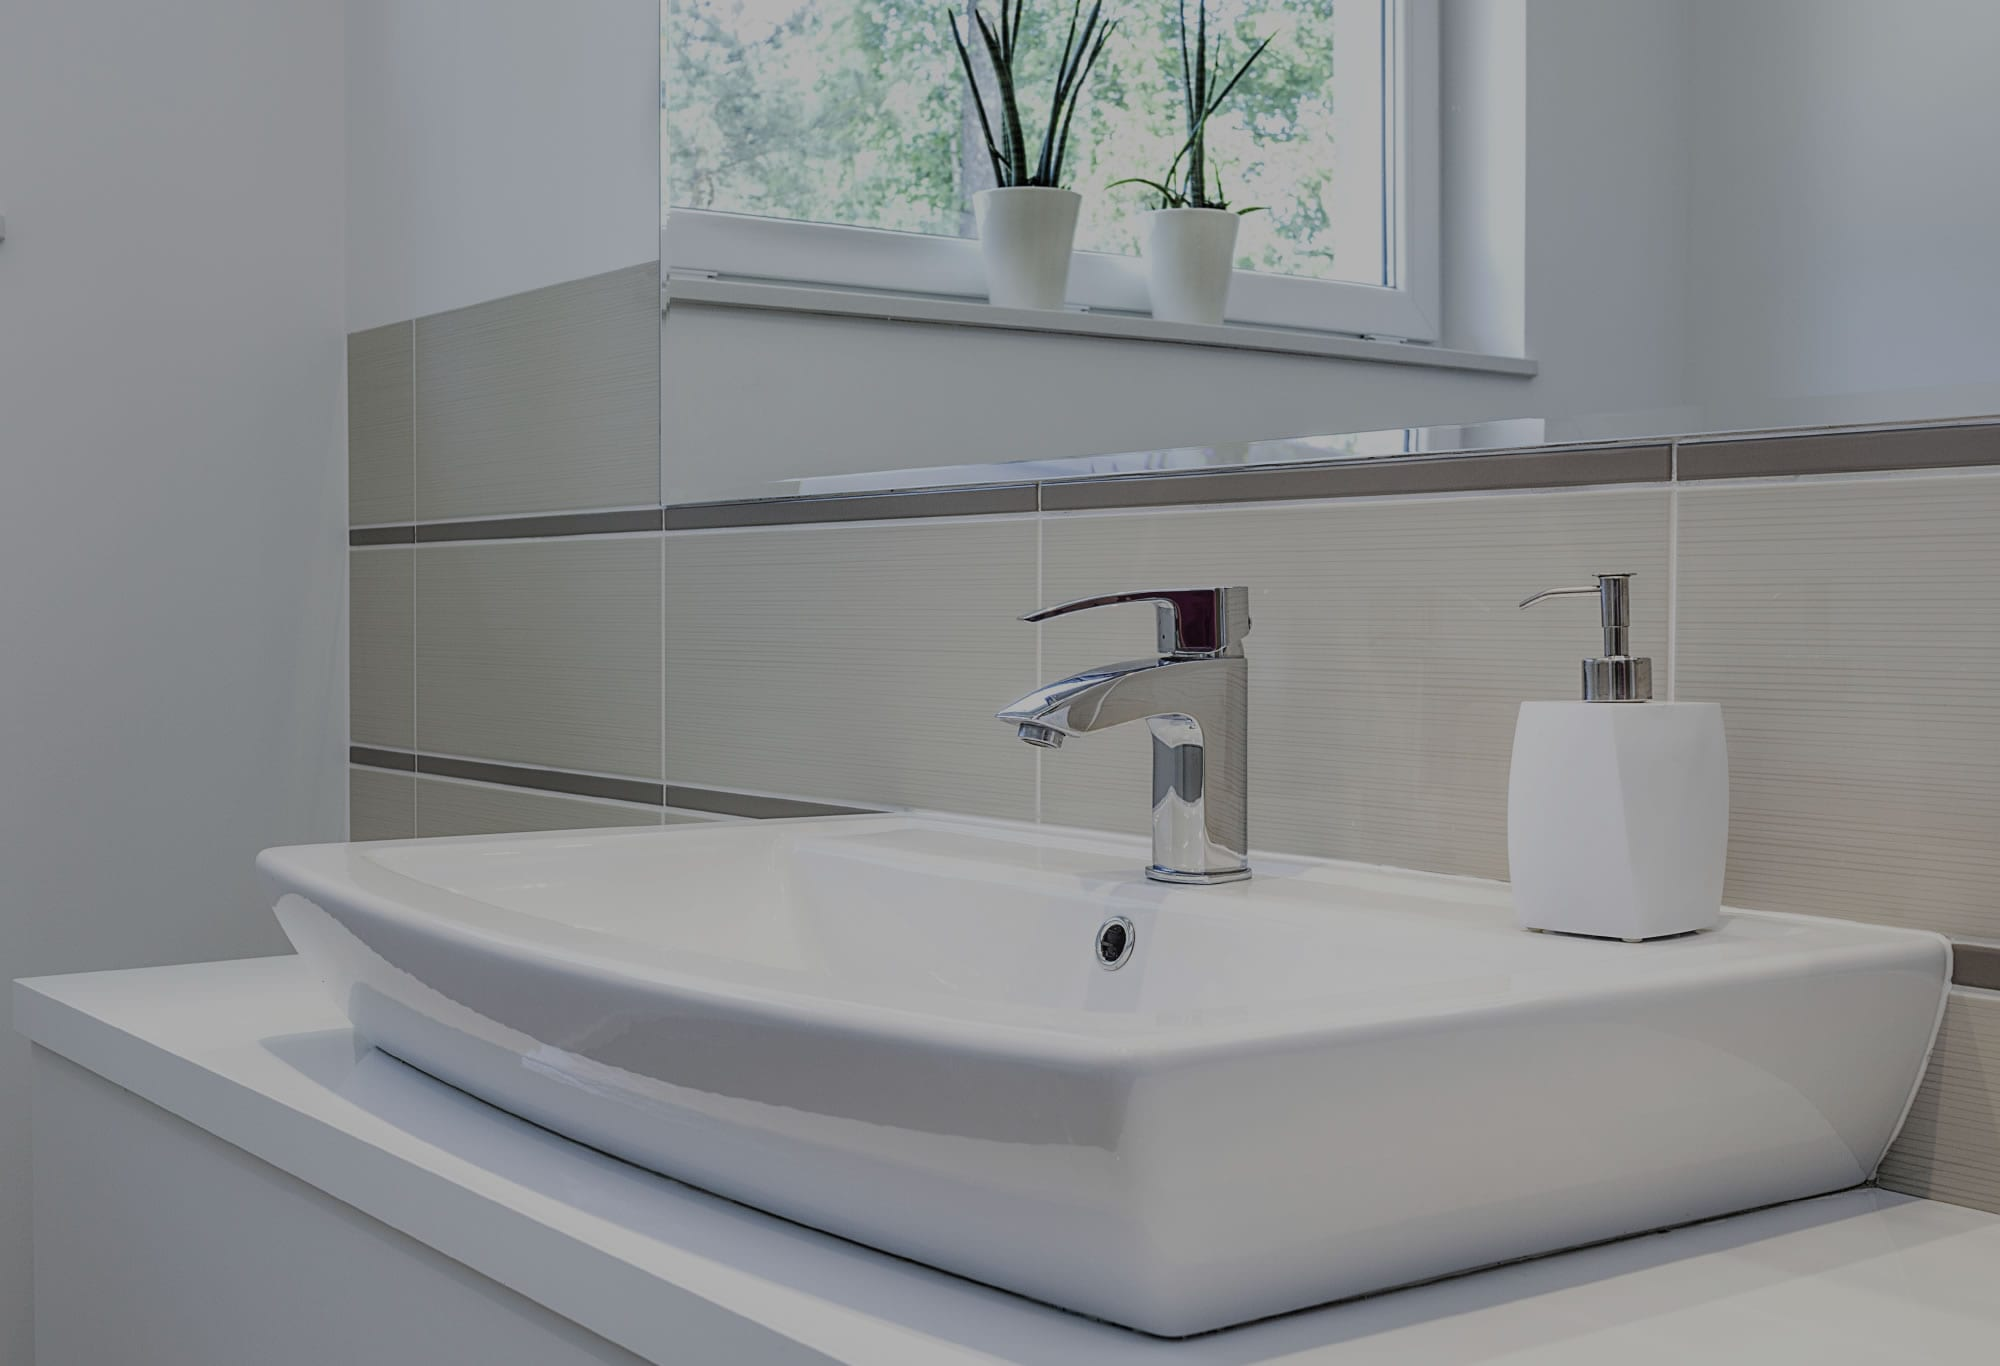 Reglazing Studio Bathtub Sinks Tiles Refinishing In Los Angeles